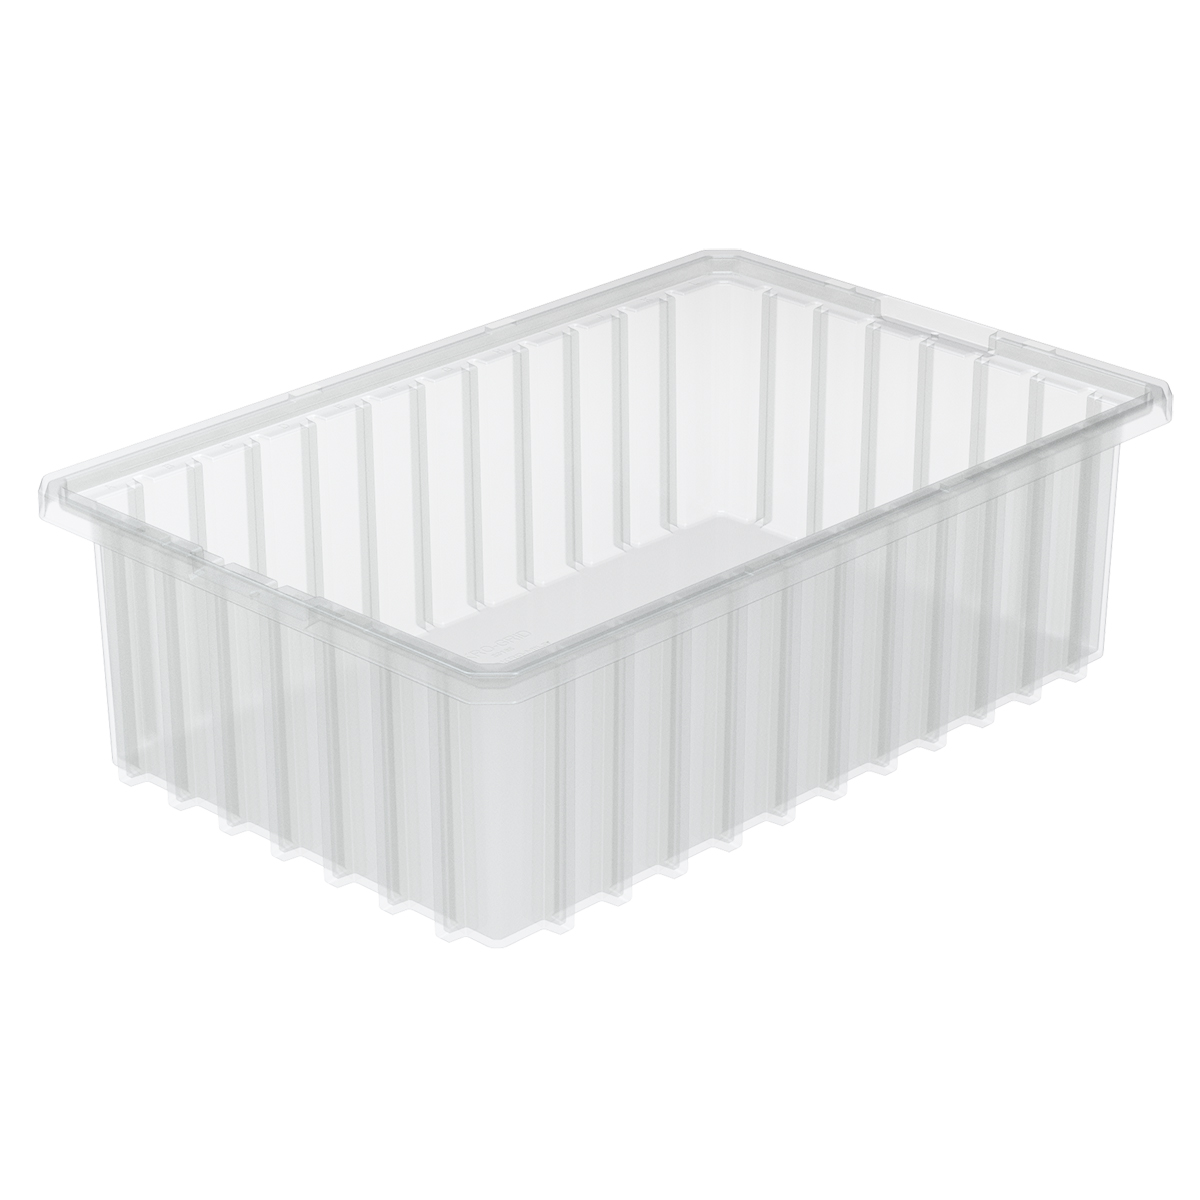 Akro-Grid Dividable Box 16-1/2 x 10-7/8 x 5, Clear.  This item sold in carton quantities of 12.